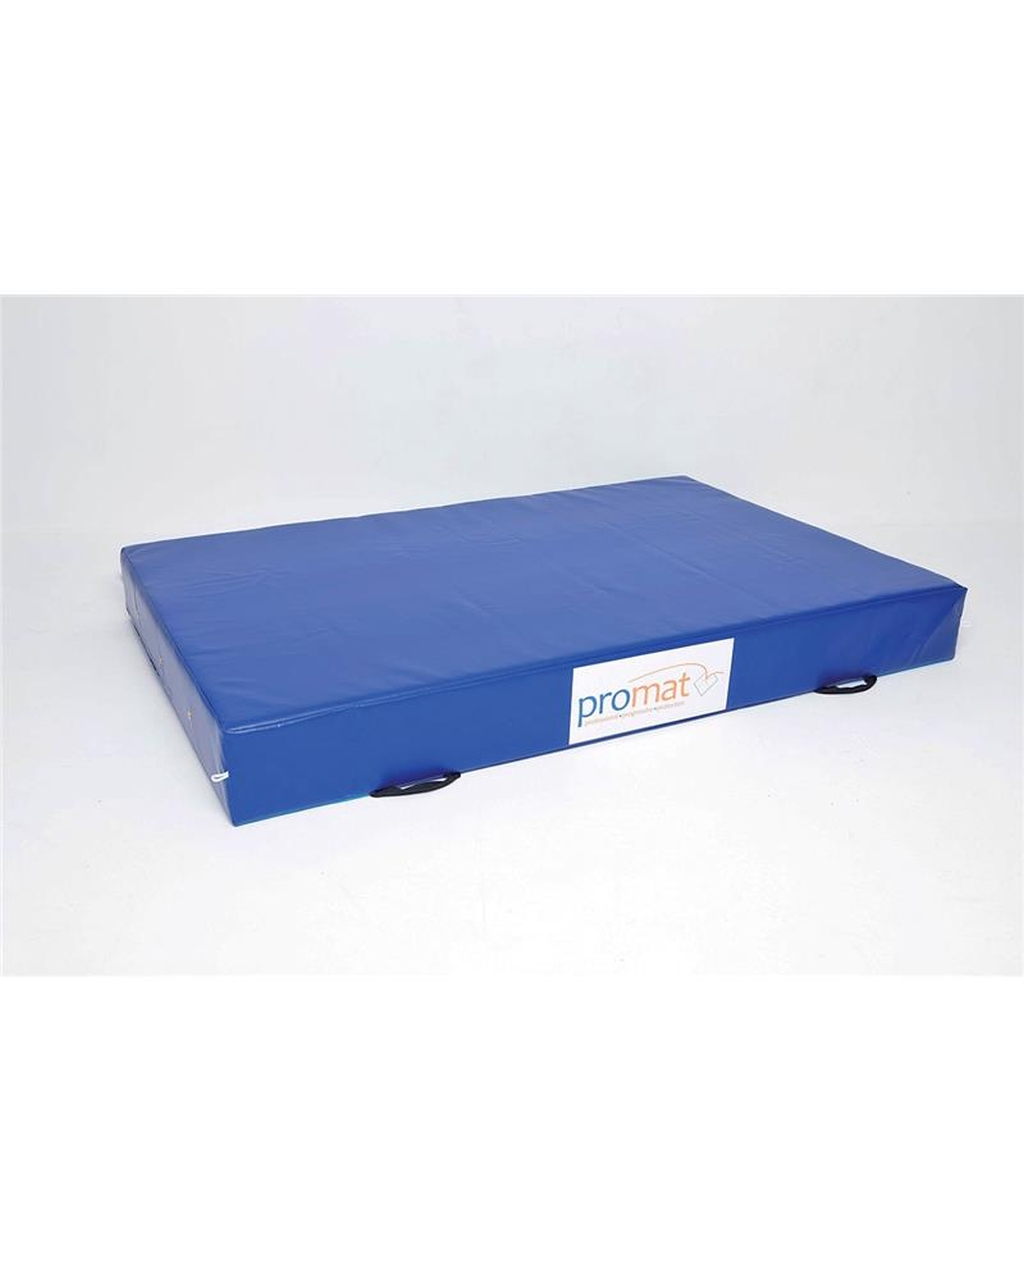 CRASH MAT 2.44M X 1.37M X 200MM